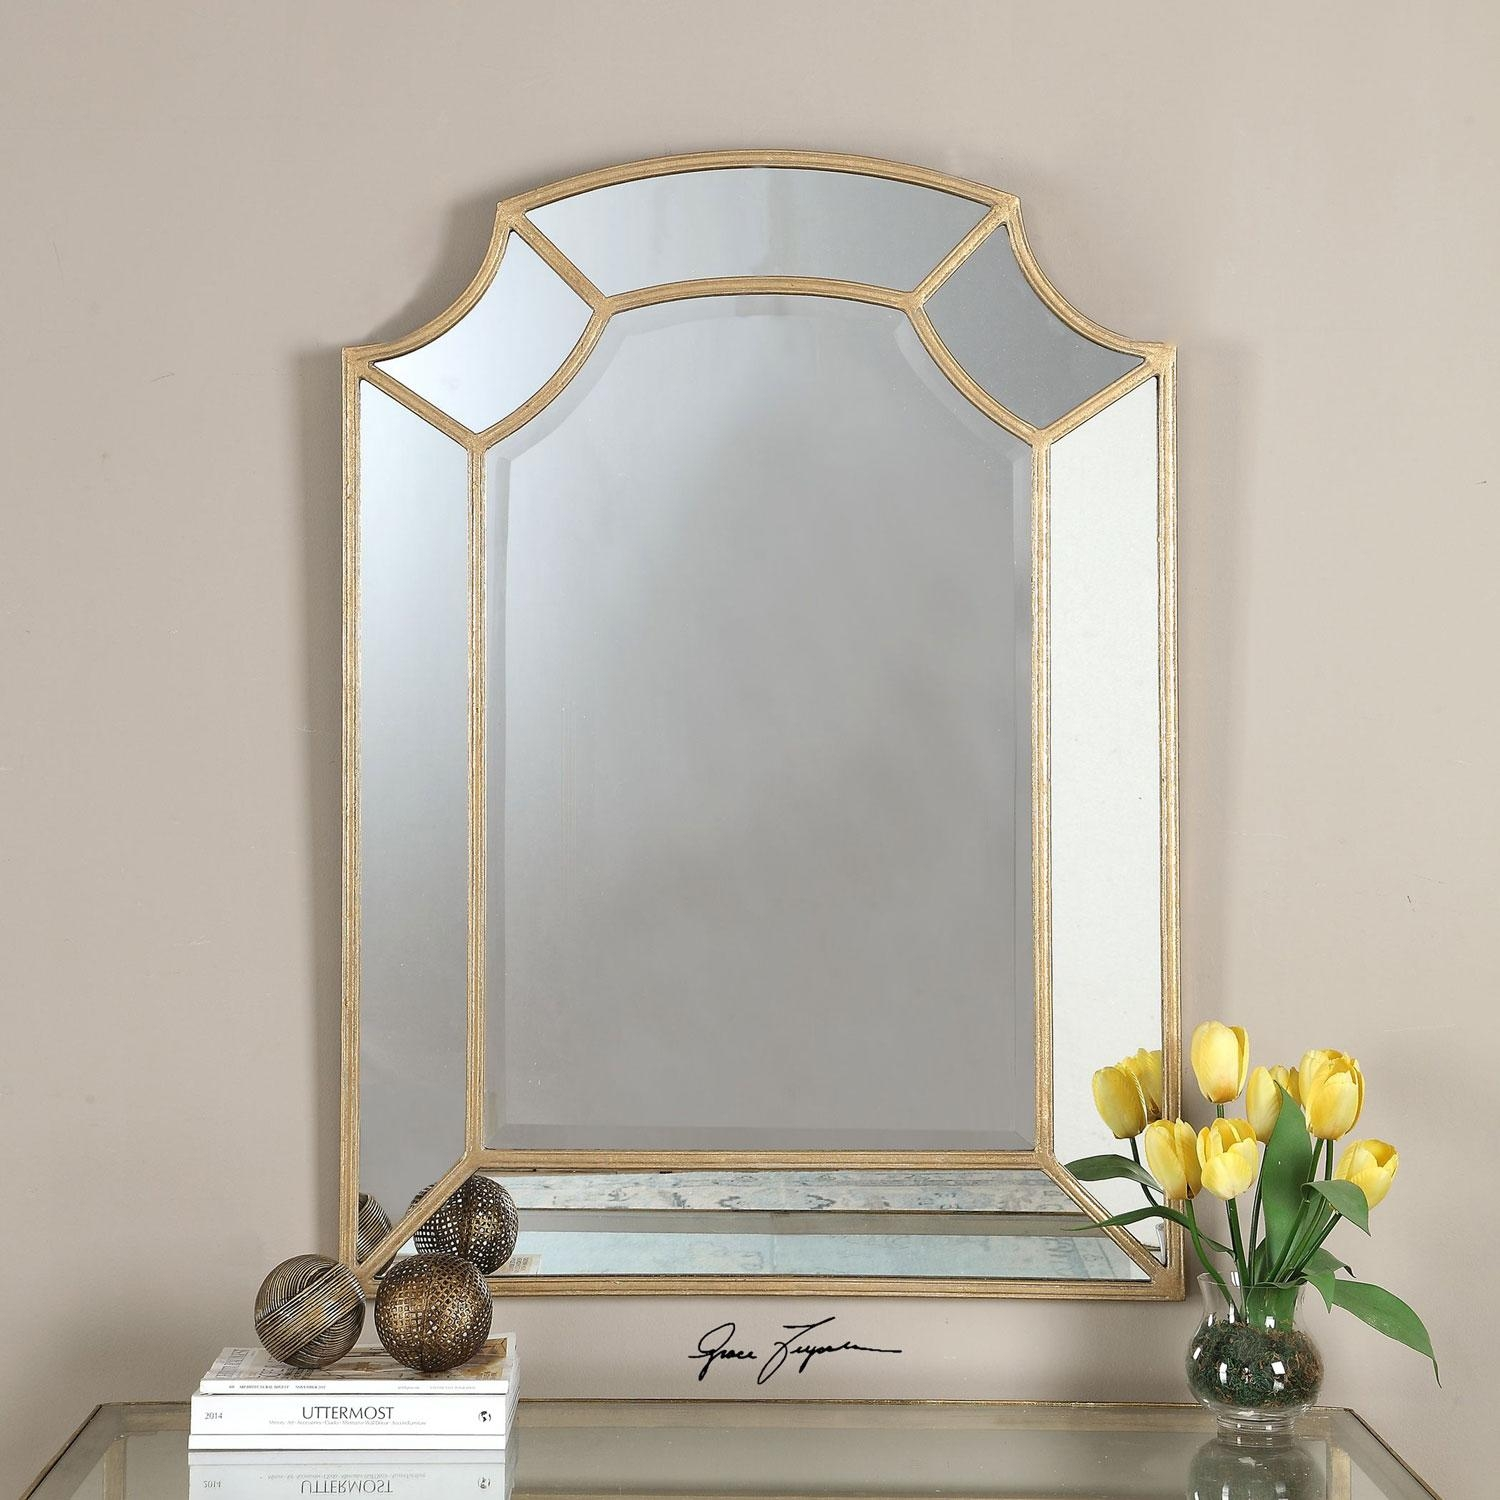 Francoli Gold Arch Mirror Uttermost Wall Mirror Mirrors Home Decor For Gold Arch Mirror (View 9 of 20)